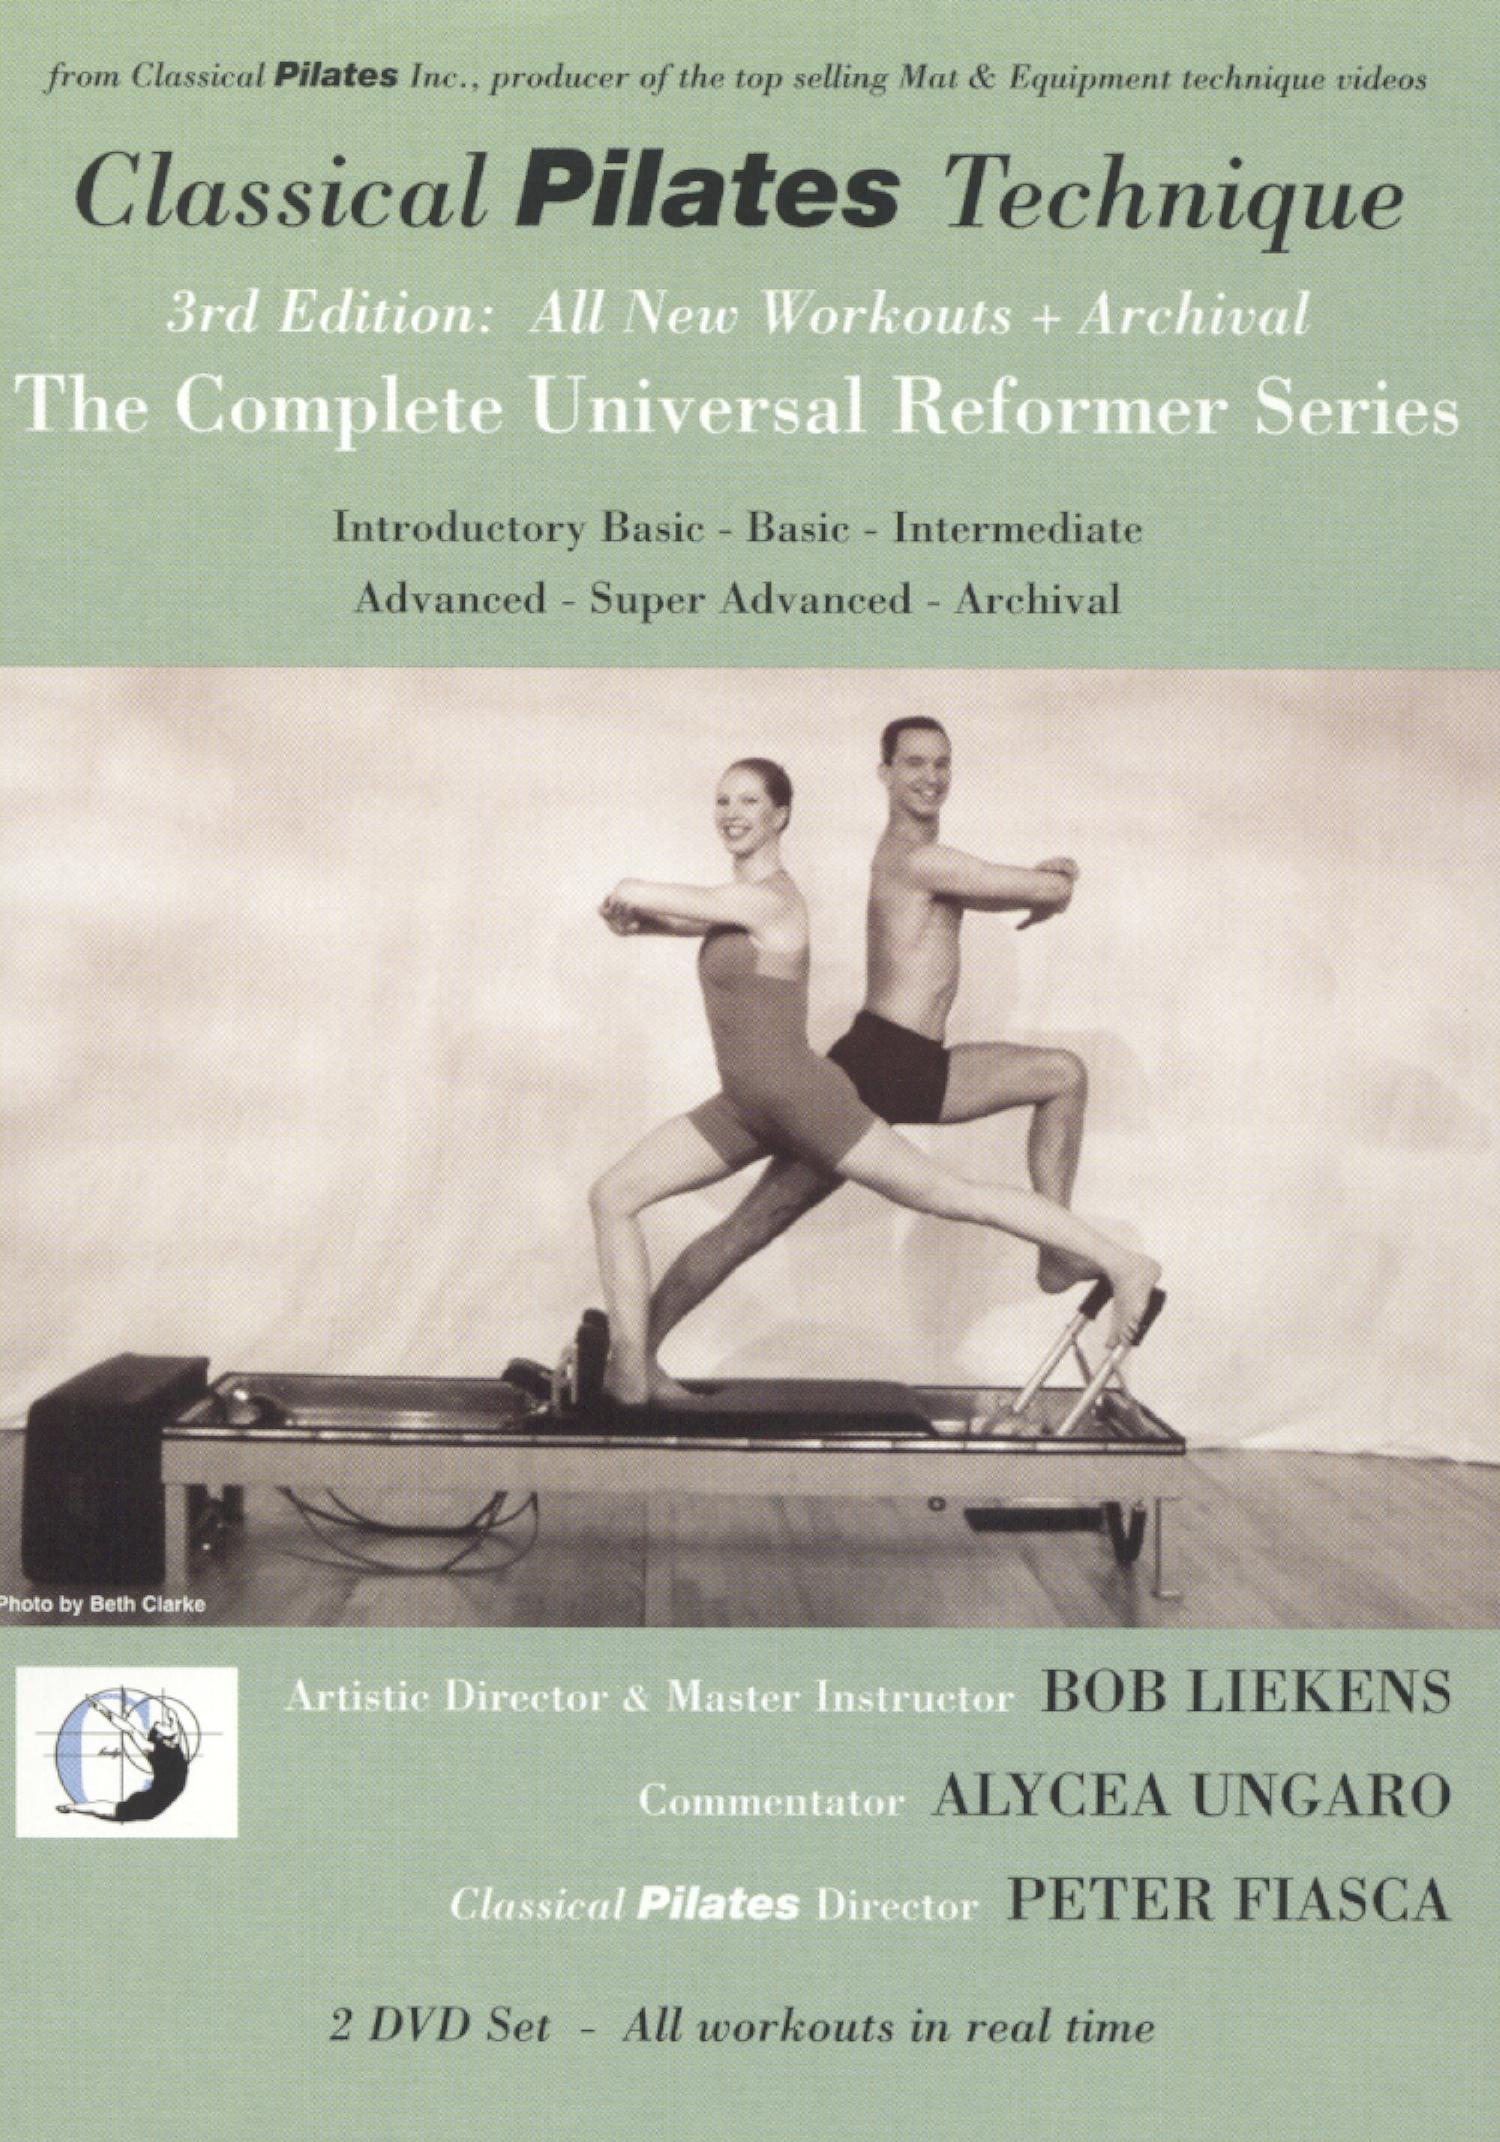 Classical Pilates Technique: The Complete Universal Reformer Series